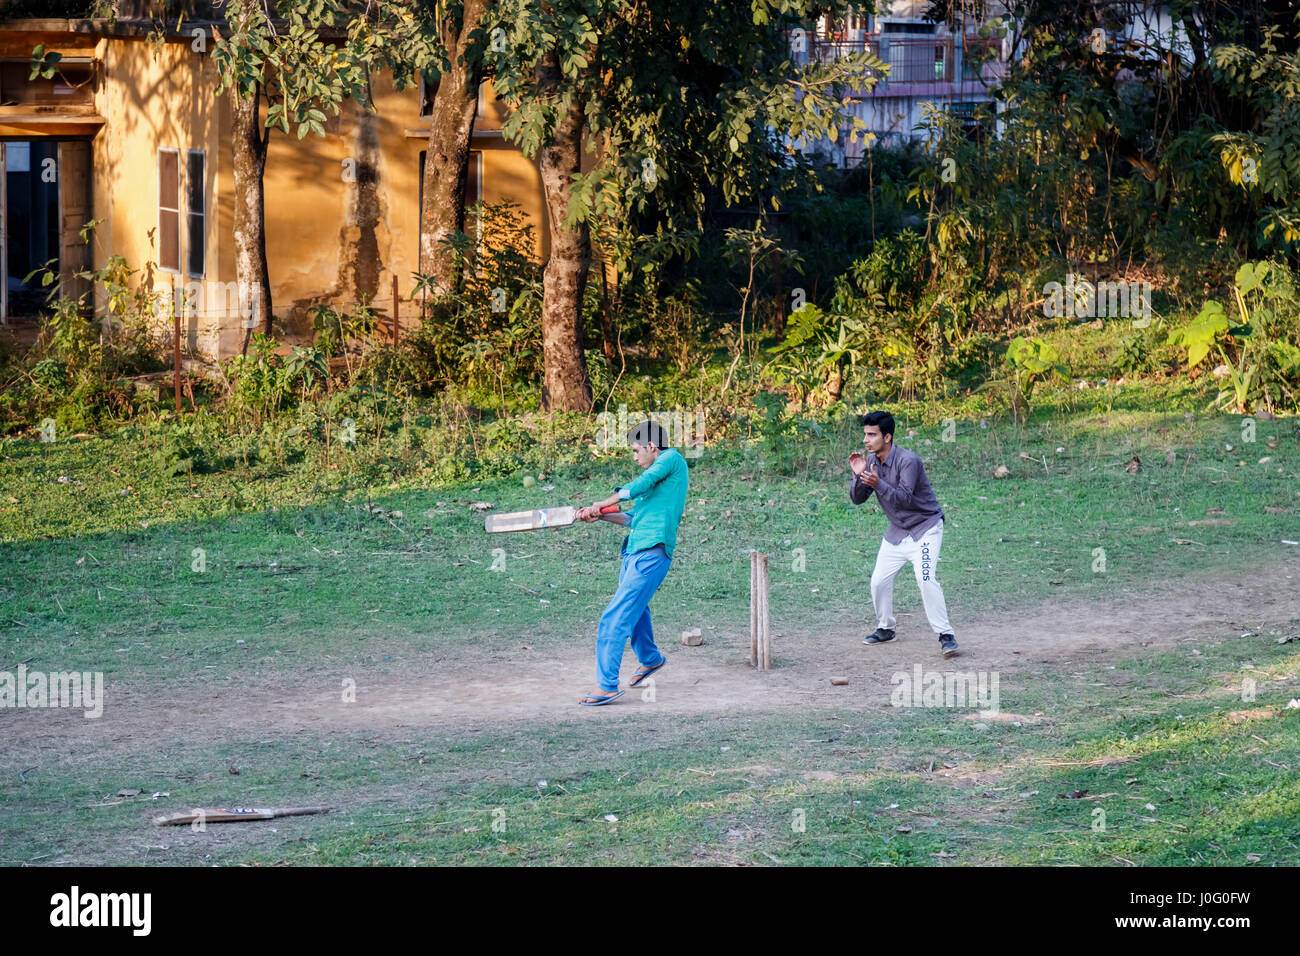 Two local Indian boys having fun playing a game of cricket on a dusty pitch in Pragpur, a heritage village in Kagra Stock Photo